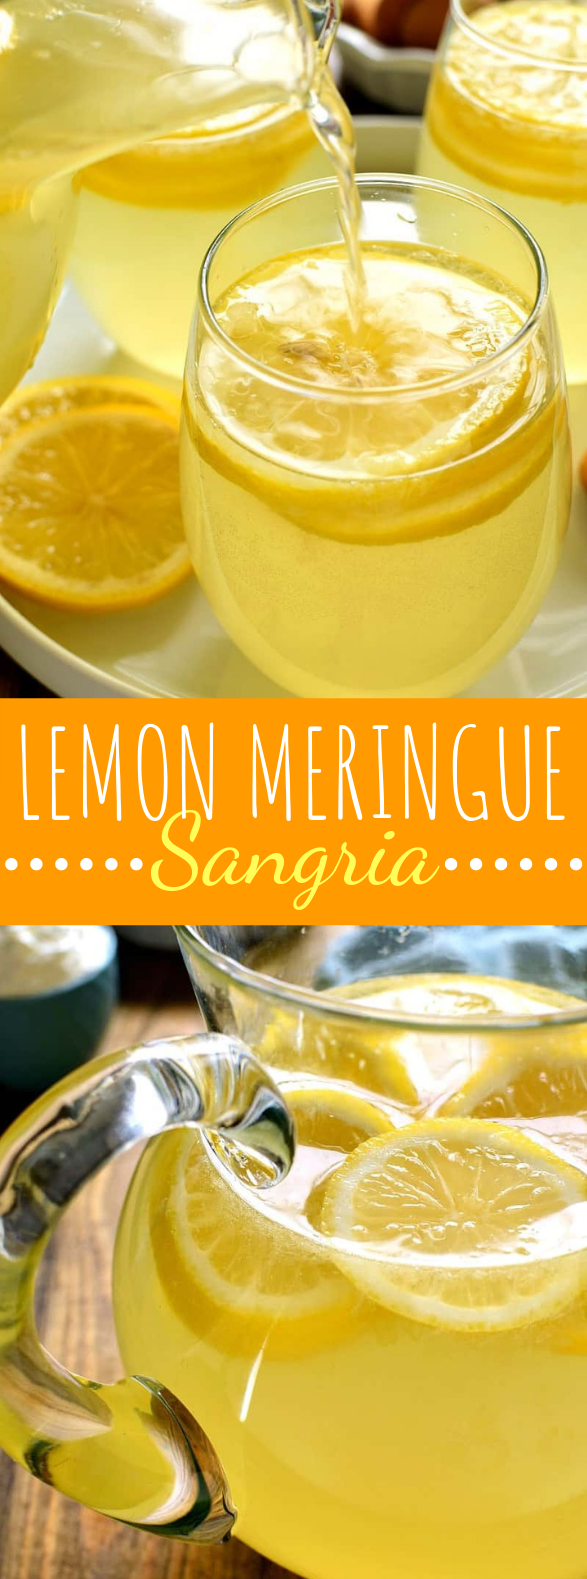 LEMON MERINGUE SANGRIA #partydrink #holiday